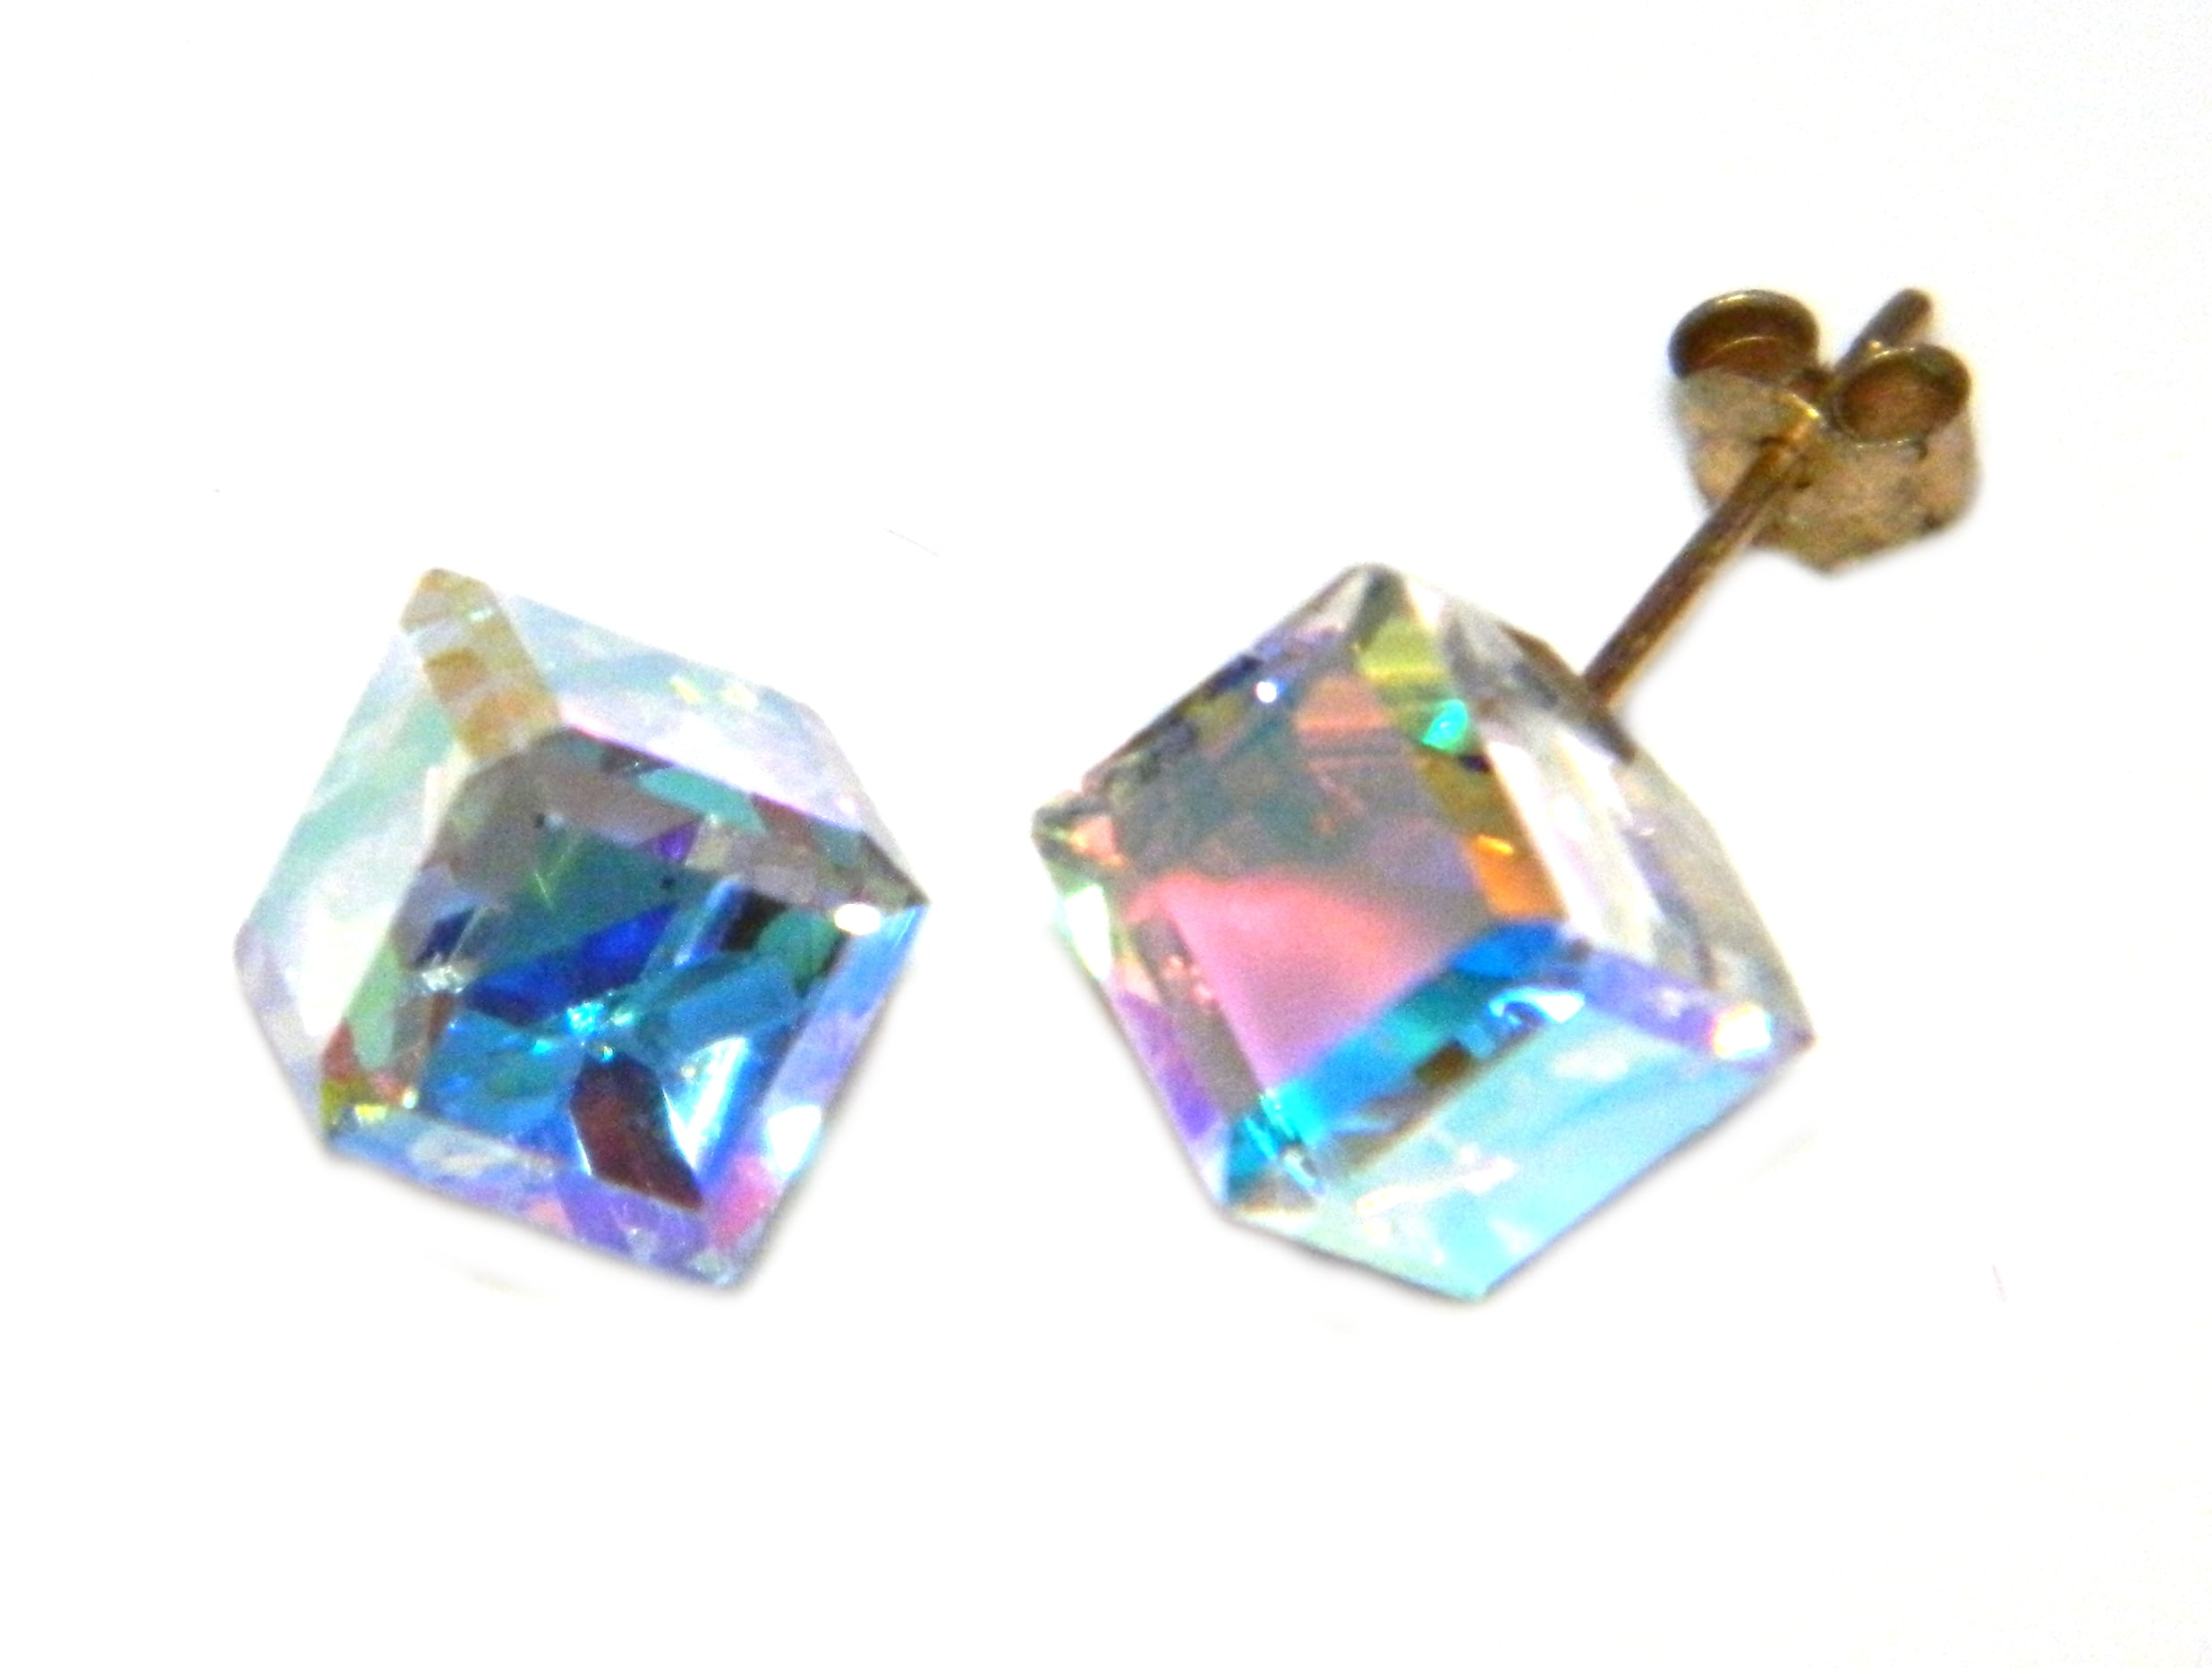 Arranview Jewellery 6mm CZ Stud Earring - 9ct Gold With Small (3mm) Butterfly Backs jZujtW3